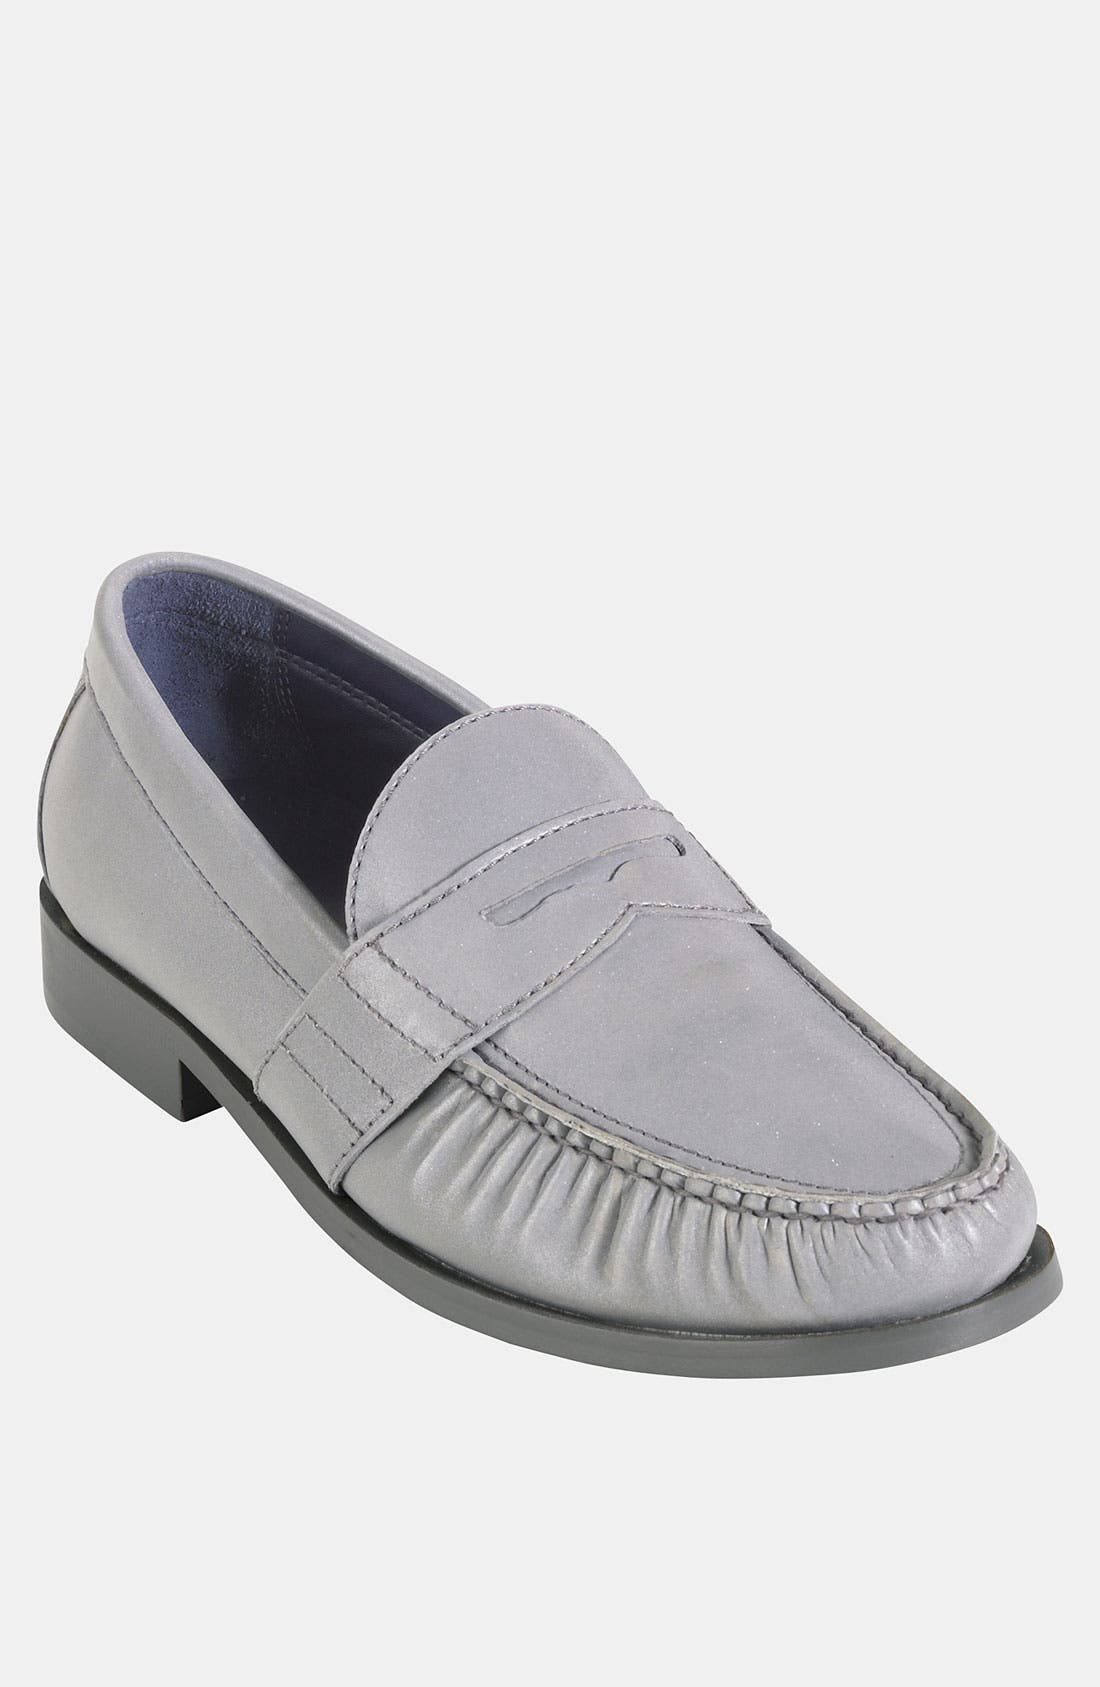 Main Image - Cole Haan 'Air Monroe' Penny Loafer   (Men)